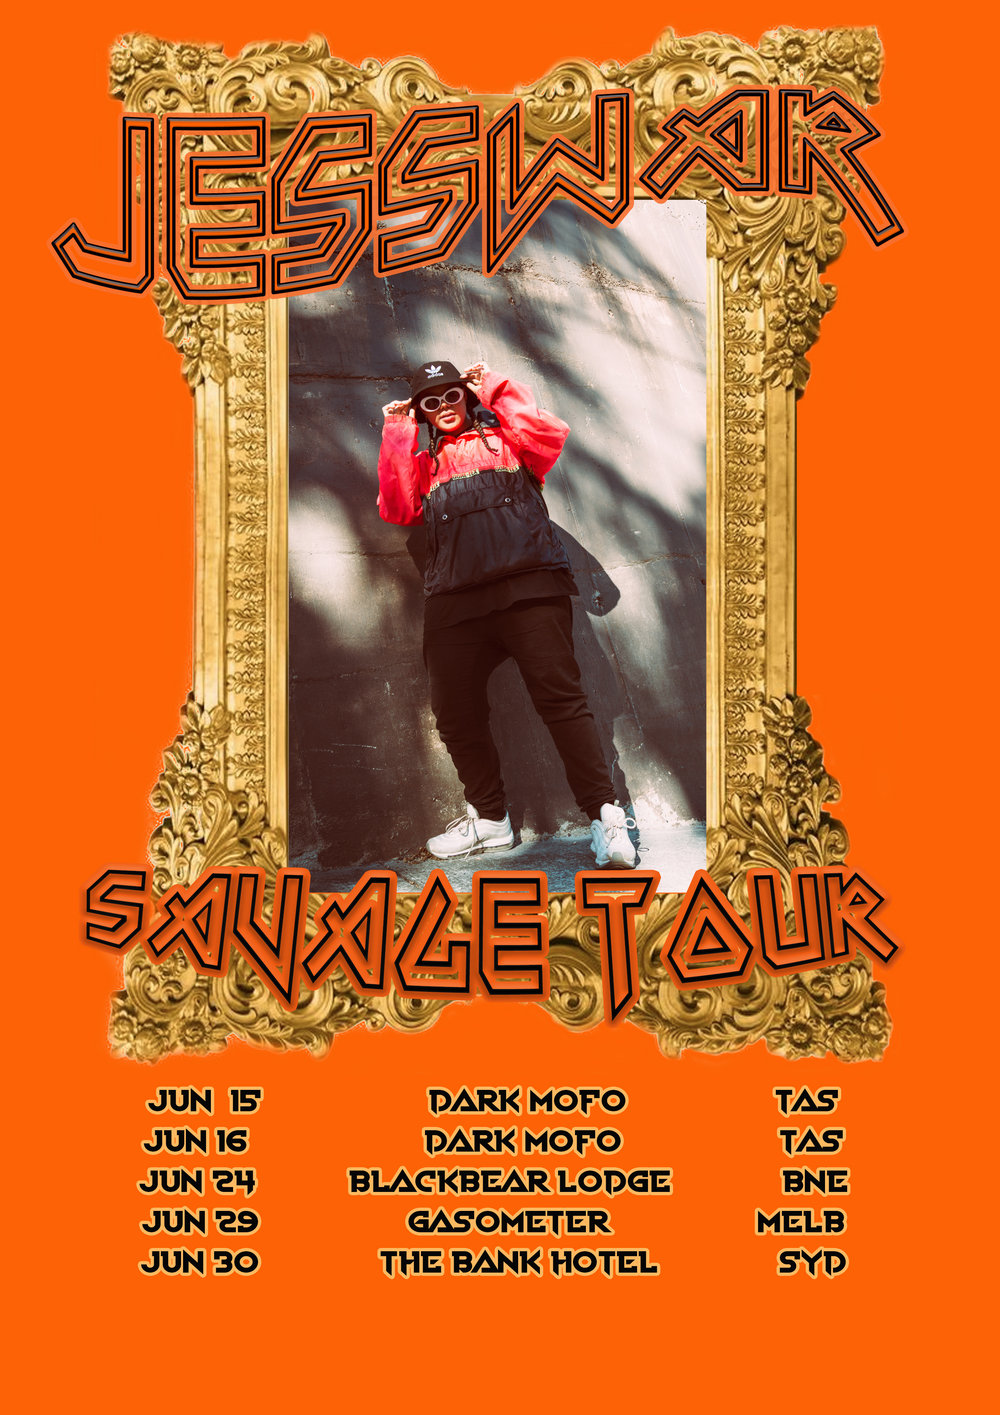 savage tour poster.jpg